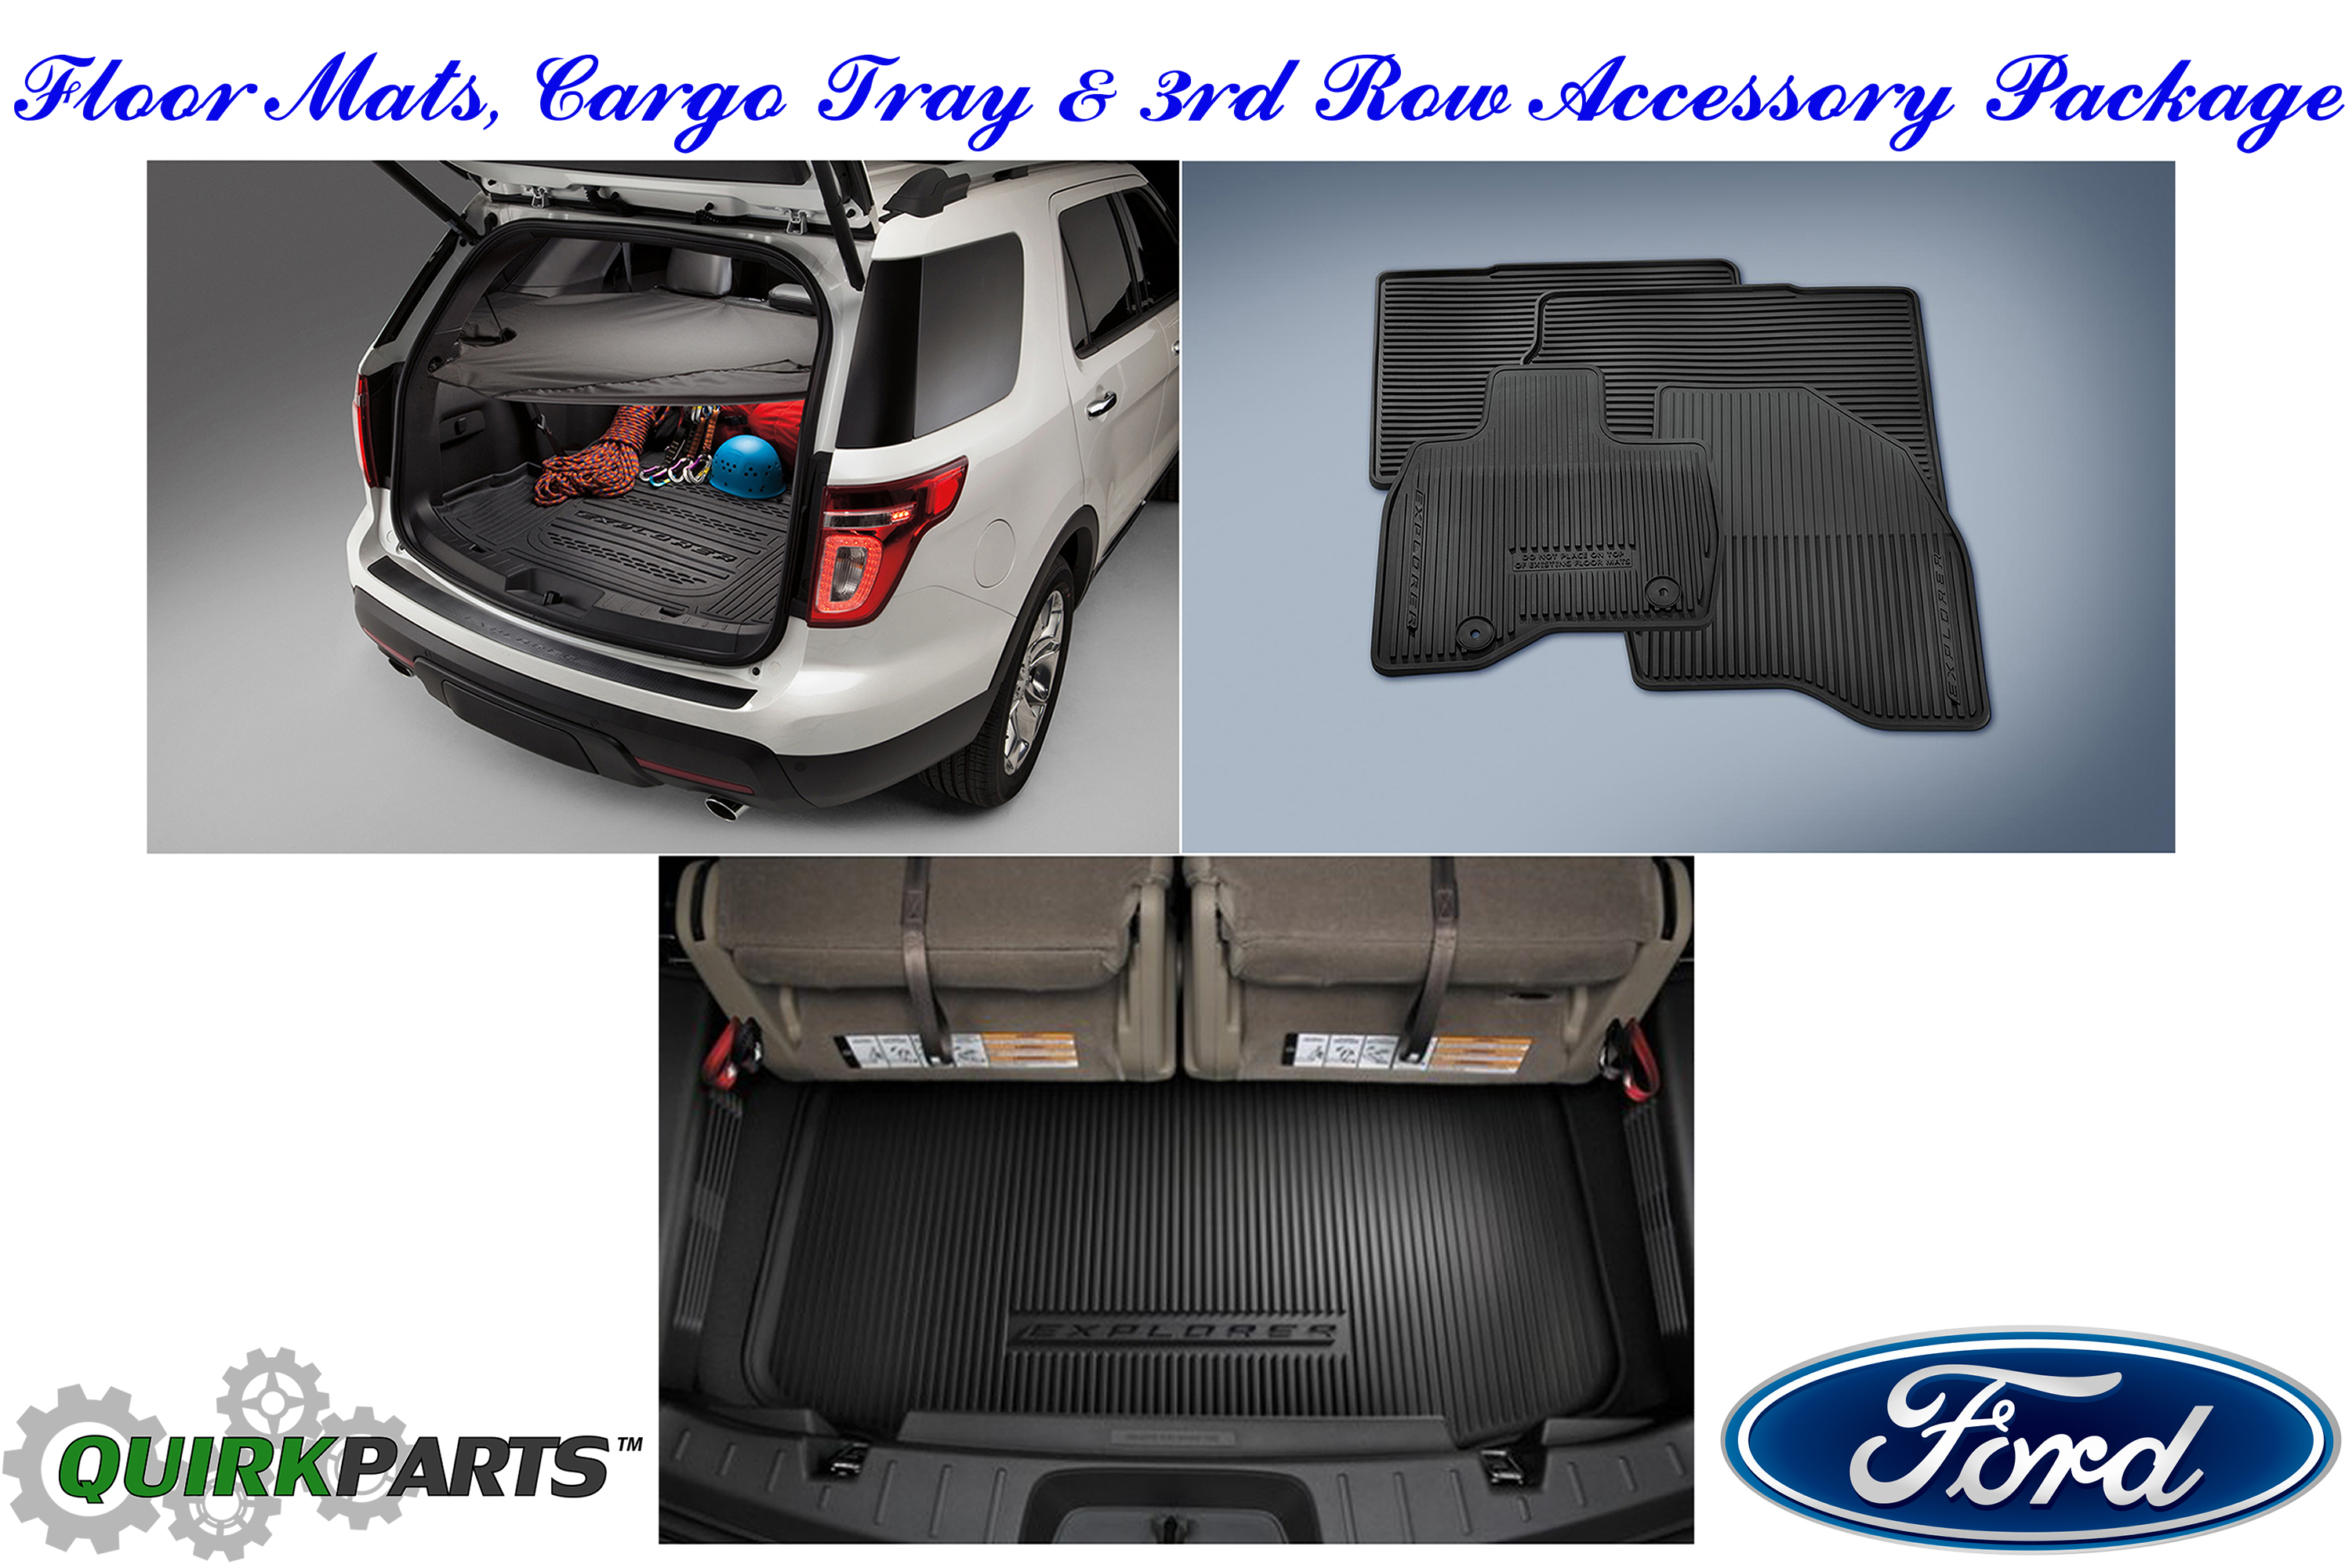 2016 Ford Explorer All Weather Floor Mat 3rd Row Seat